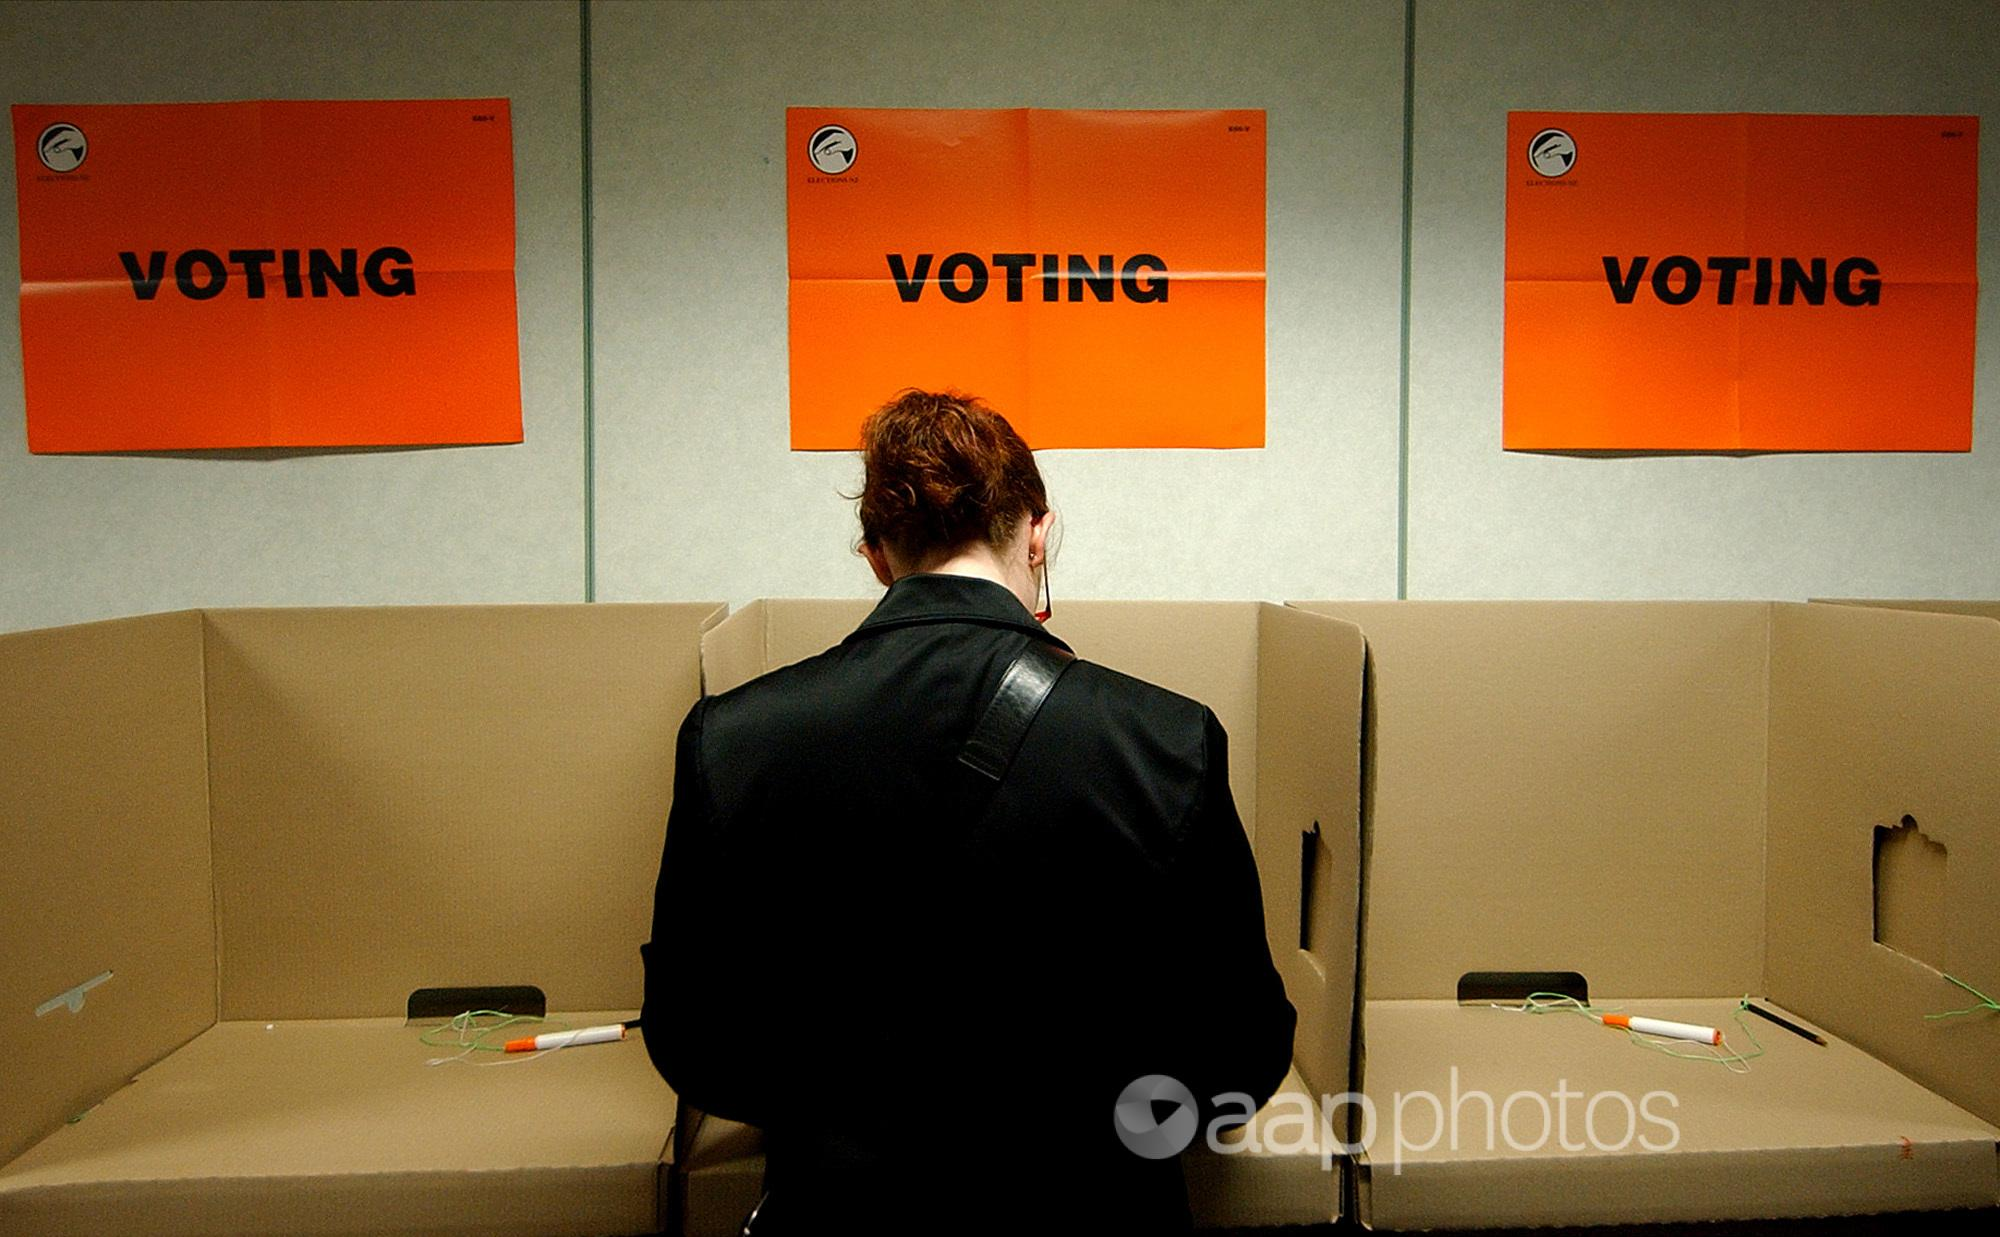 A person votes at the New Zealand general election